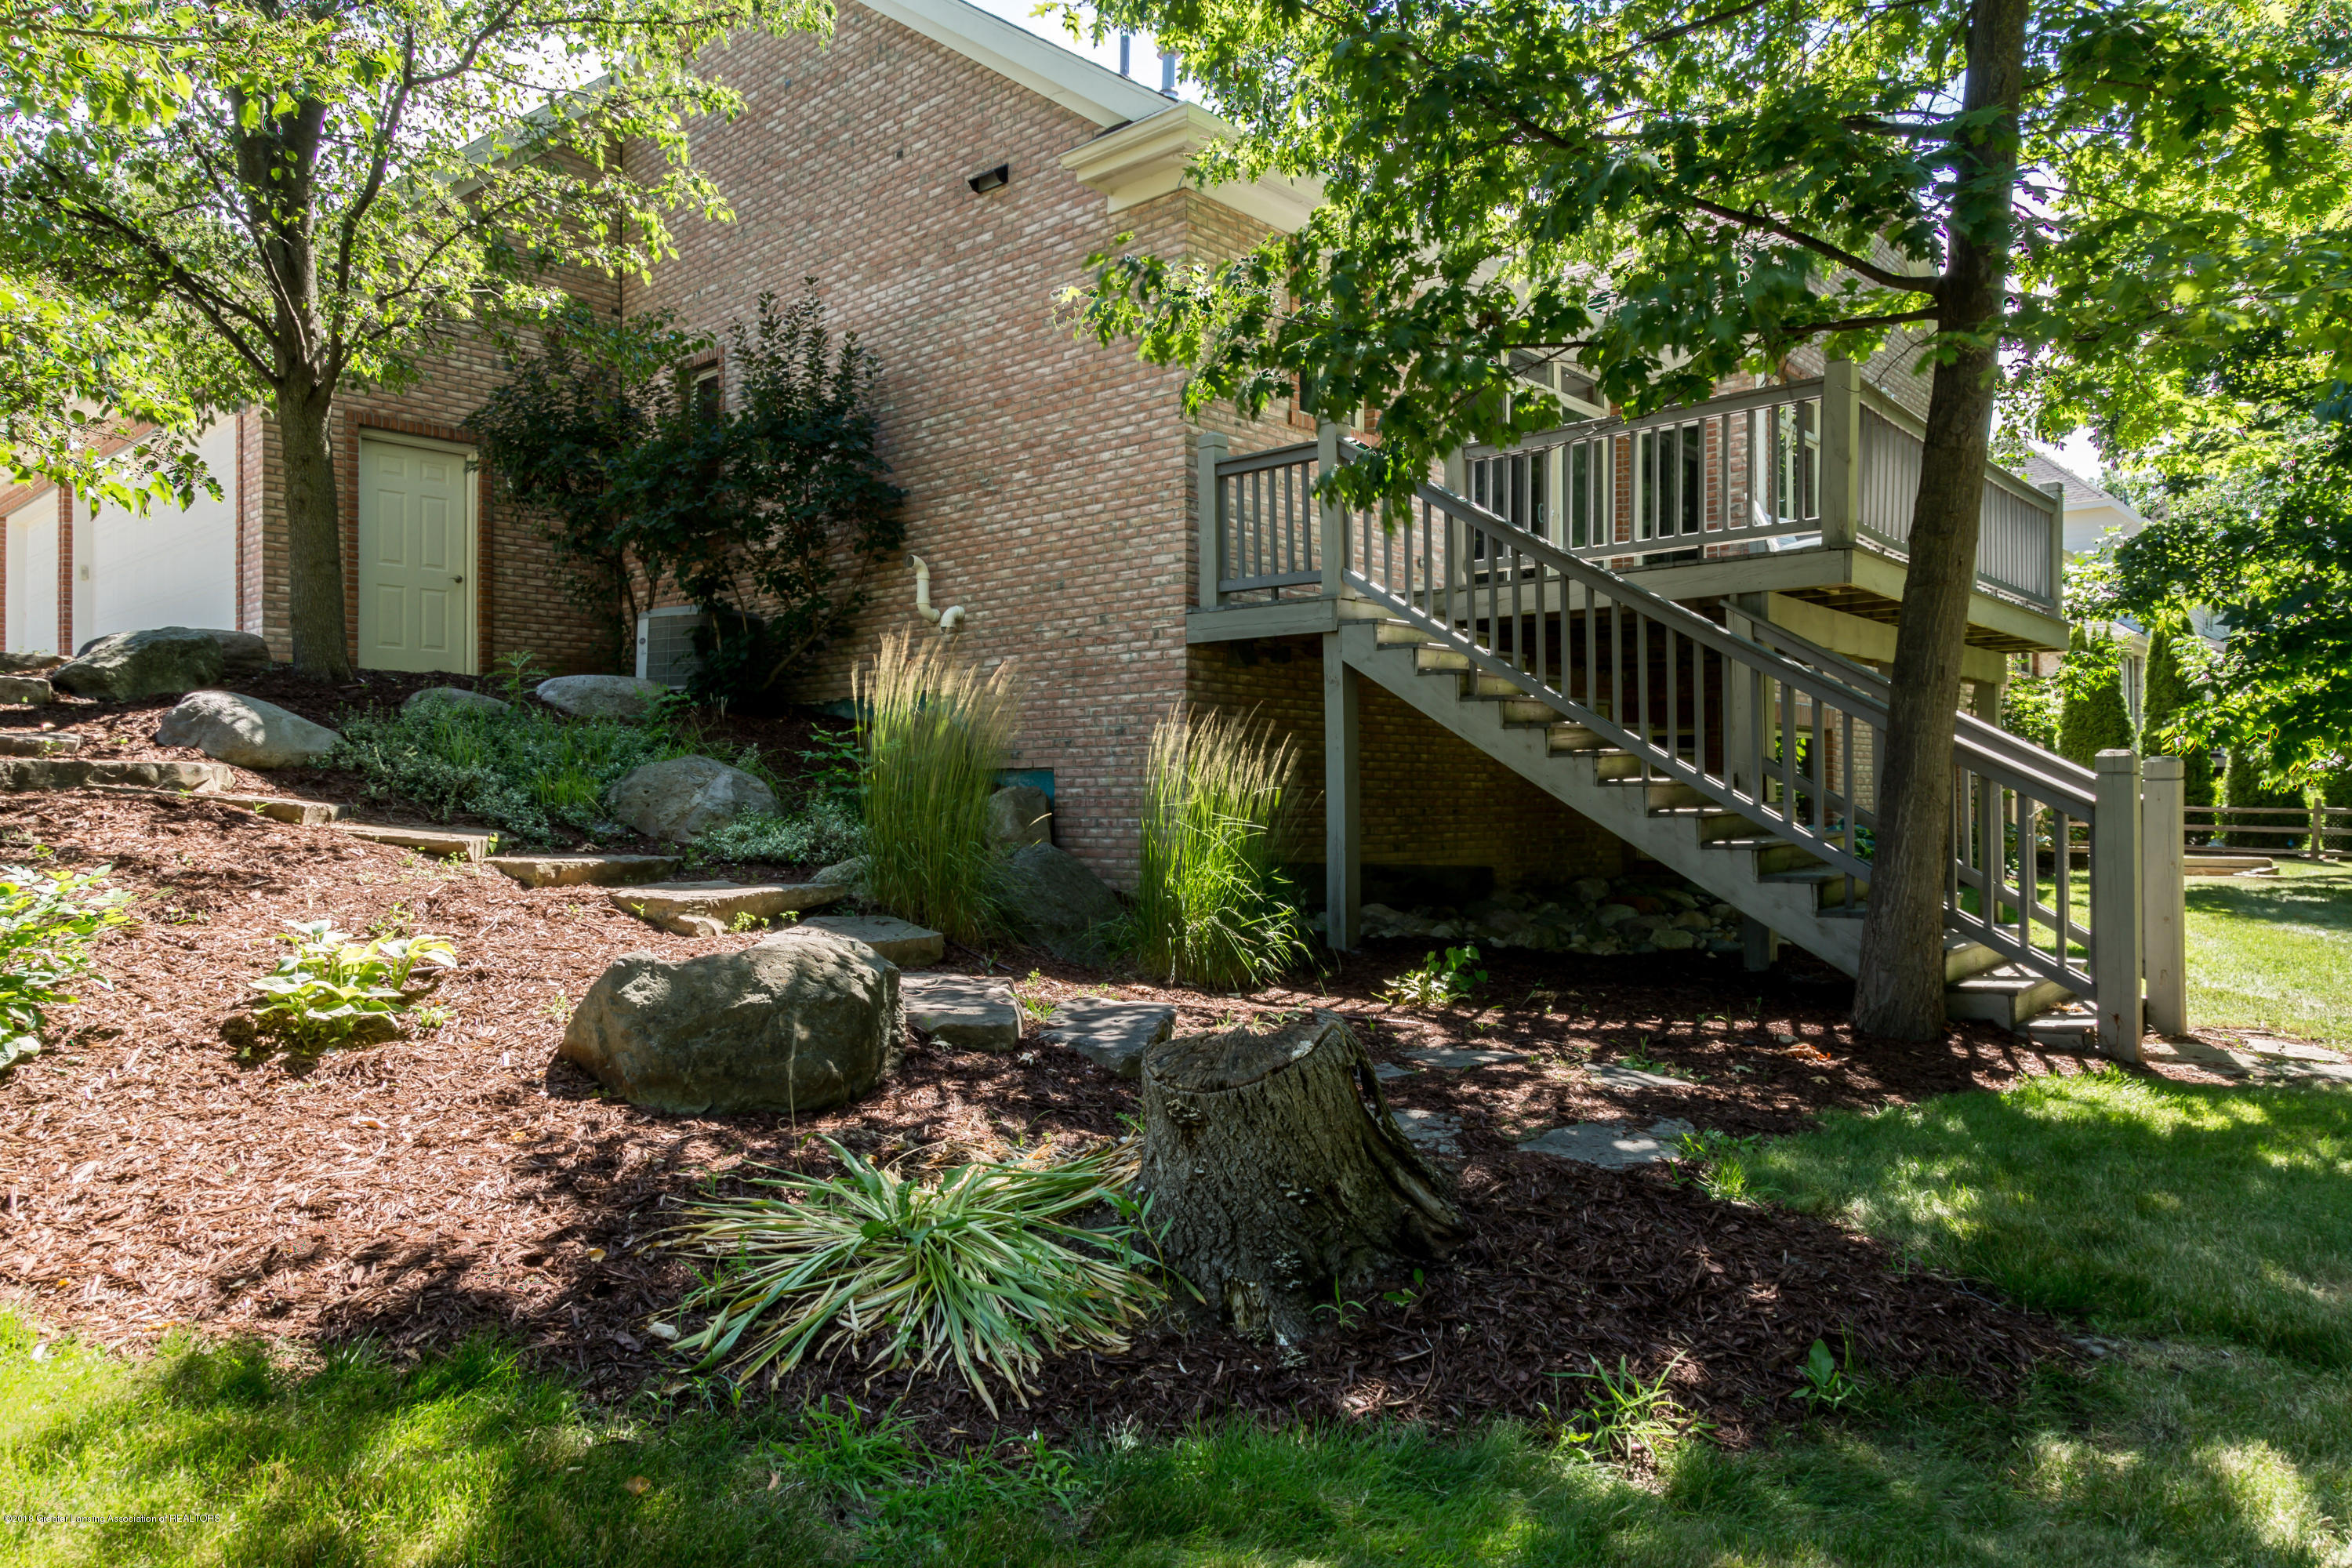 2016 Belwood Dr - 20180710-942A3197-HDR - 18